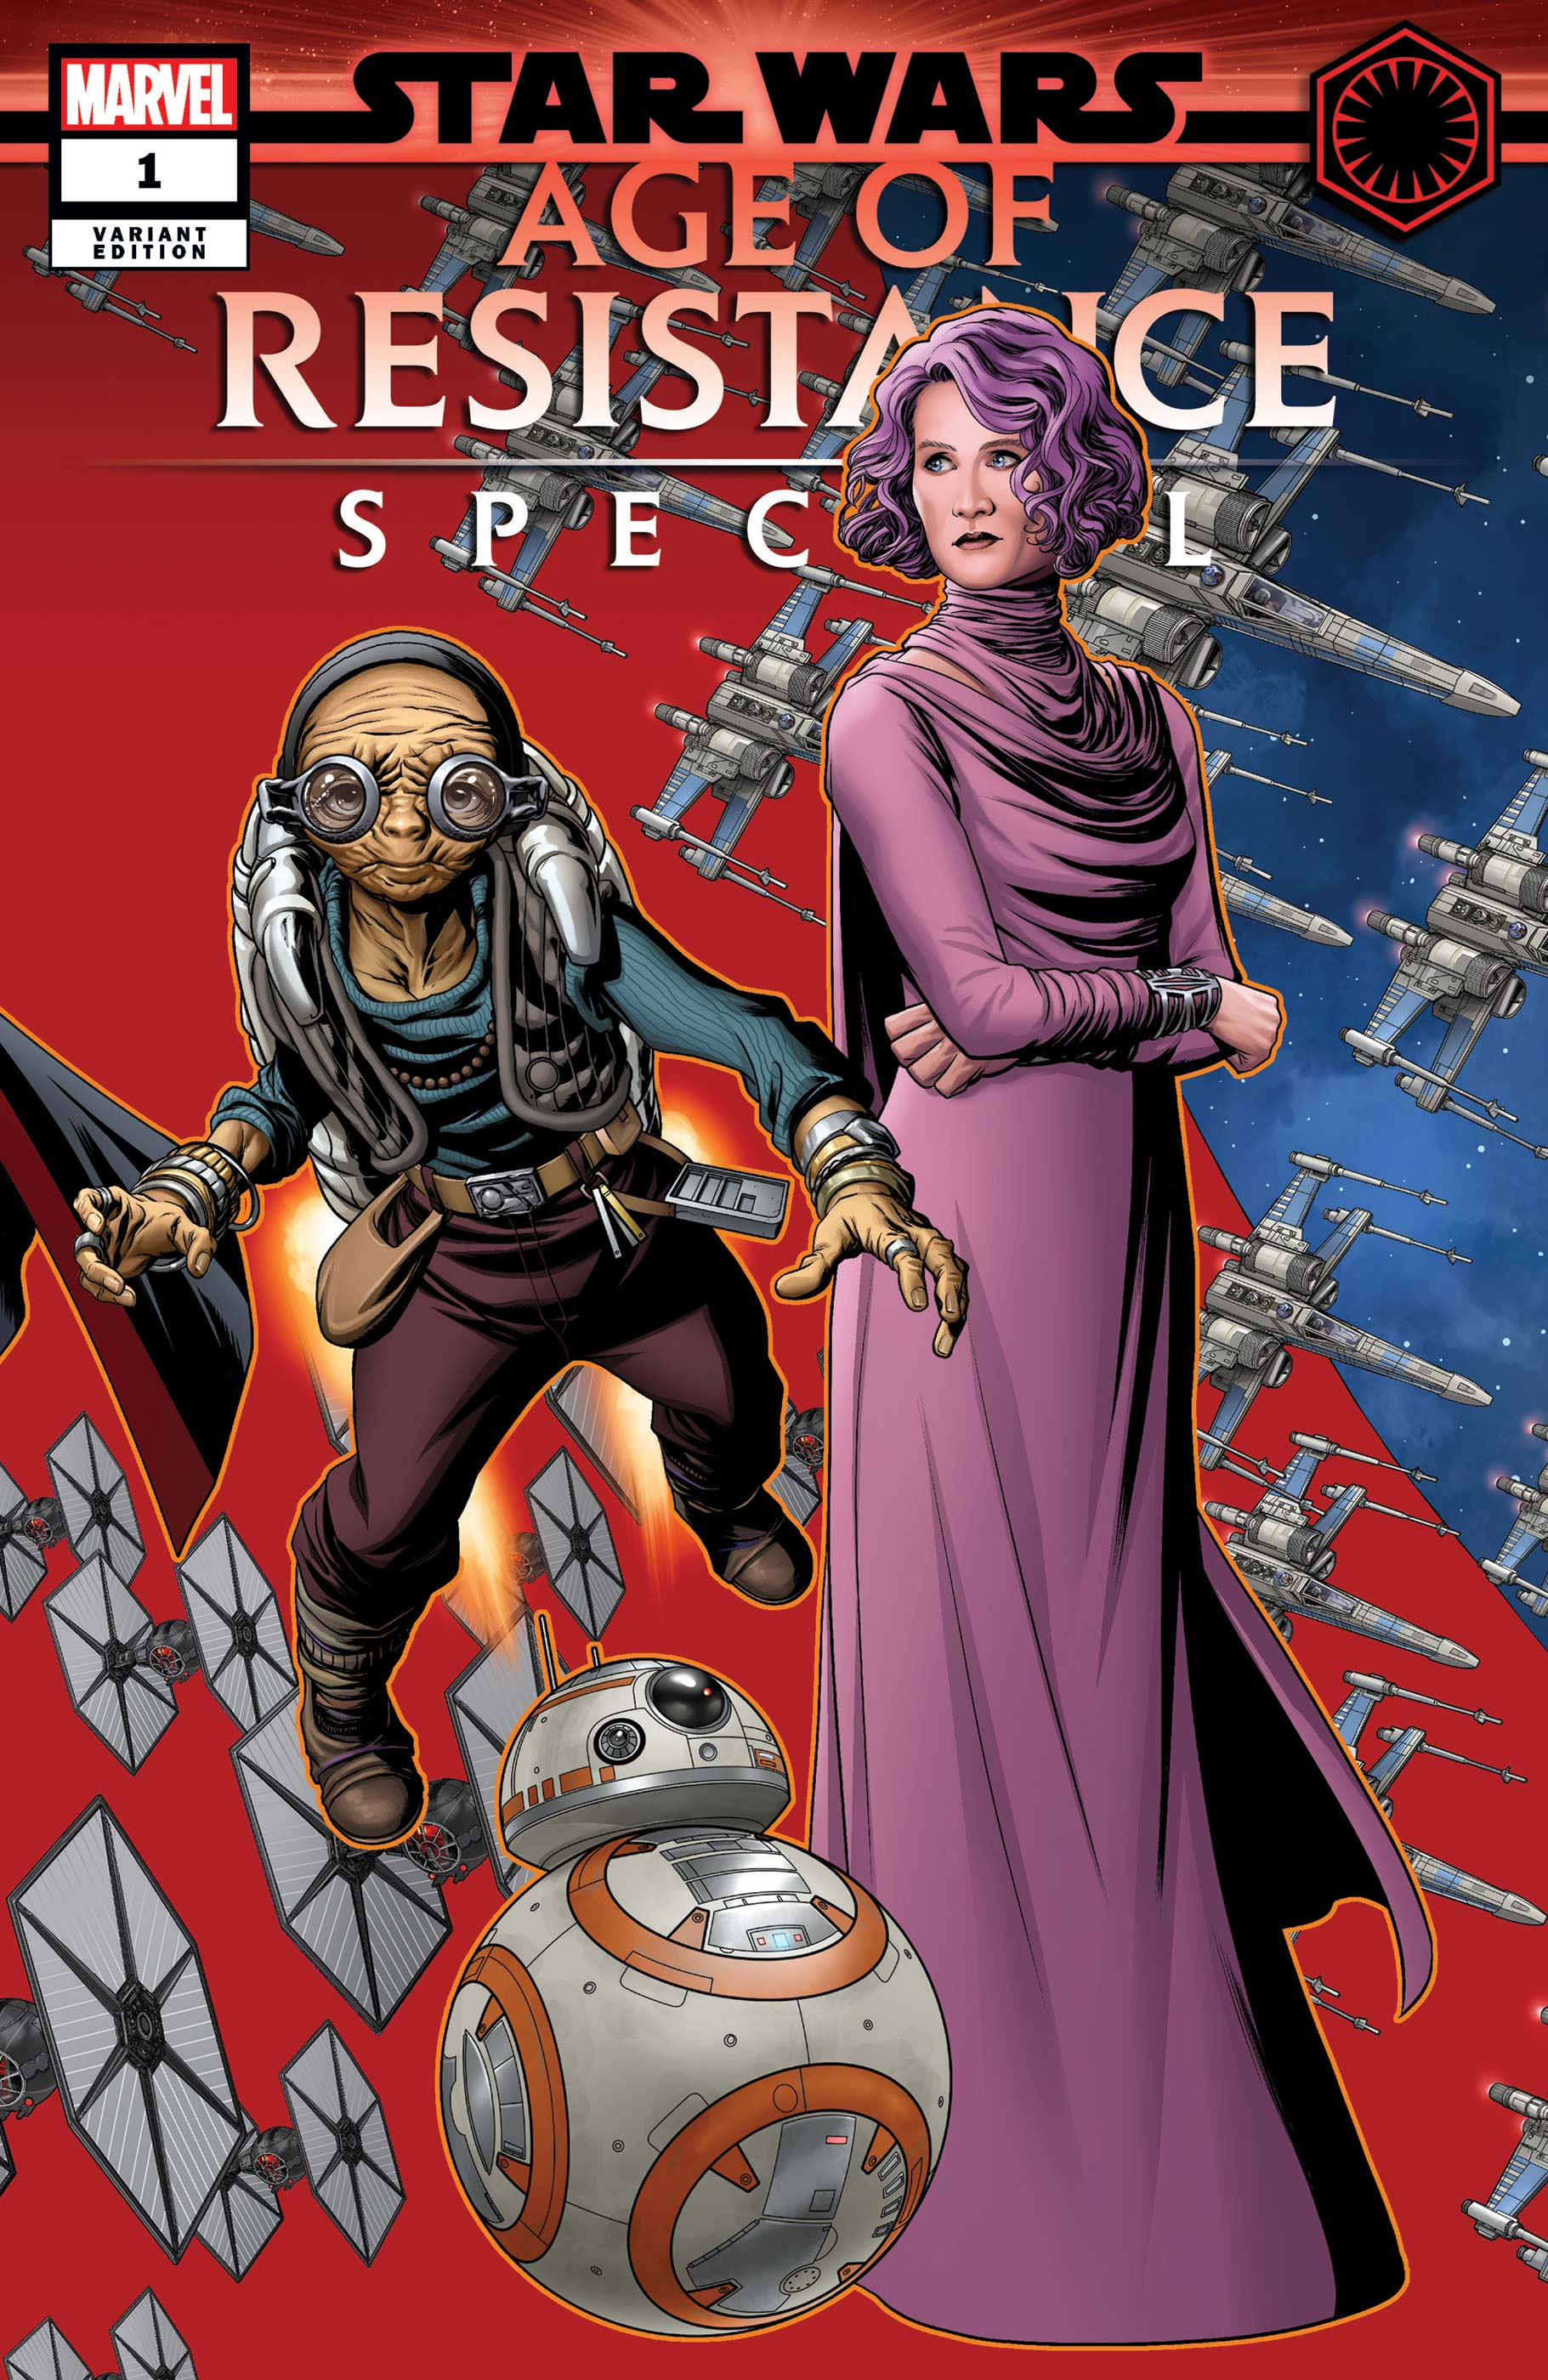 Star Wars: Age of Resistance Special (2019) #1 (Variant)